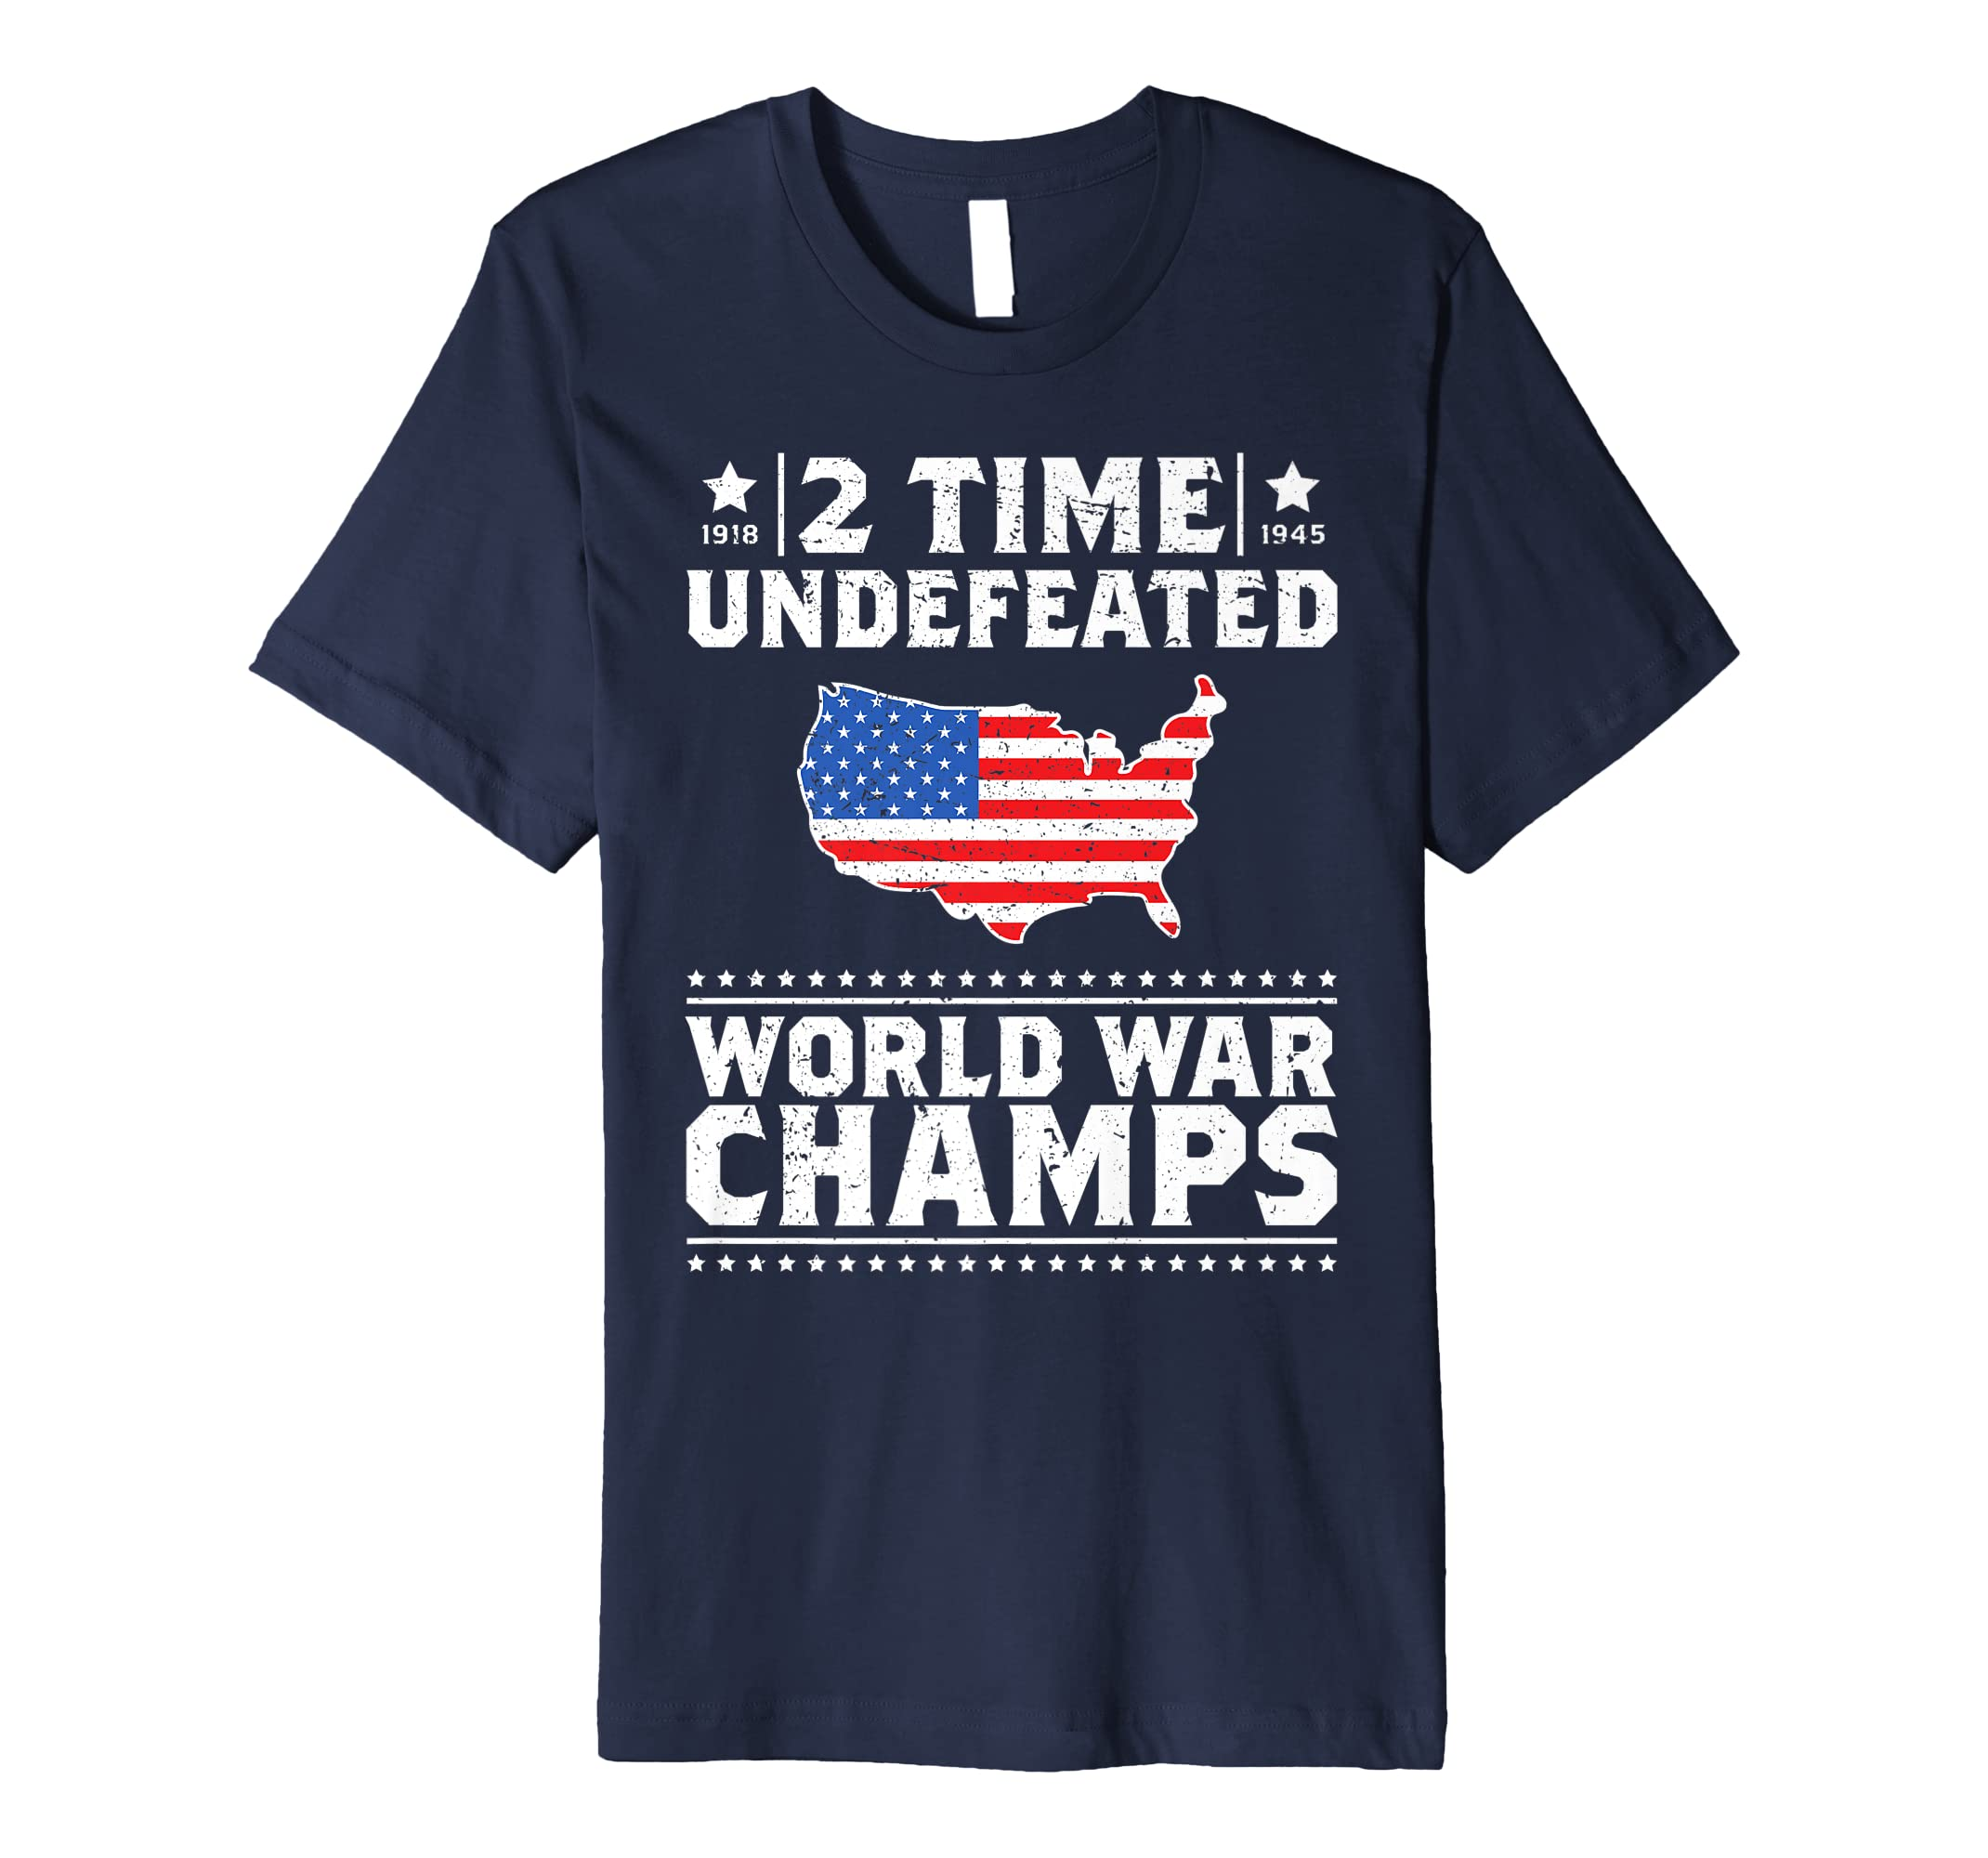 ba61e0a9 Amazon.com: Back To Back 2 Time Undefeated World War Champs Gift T-Shirt:  Clothing